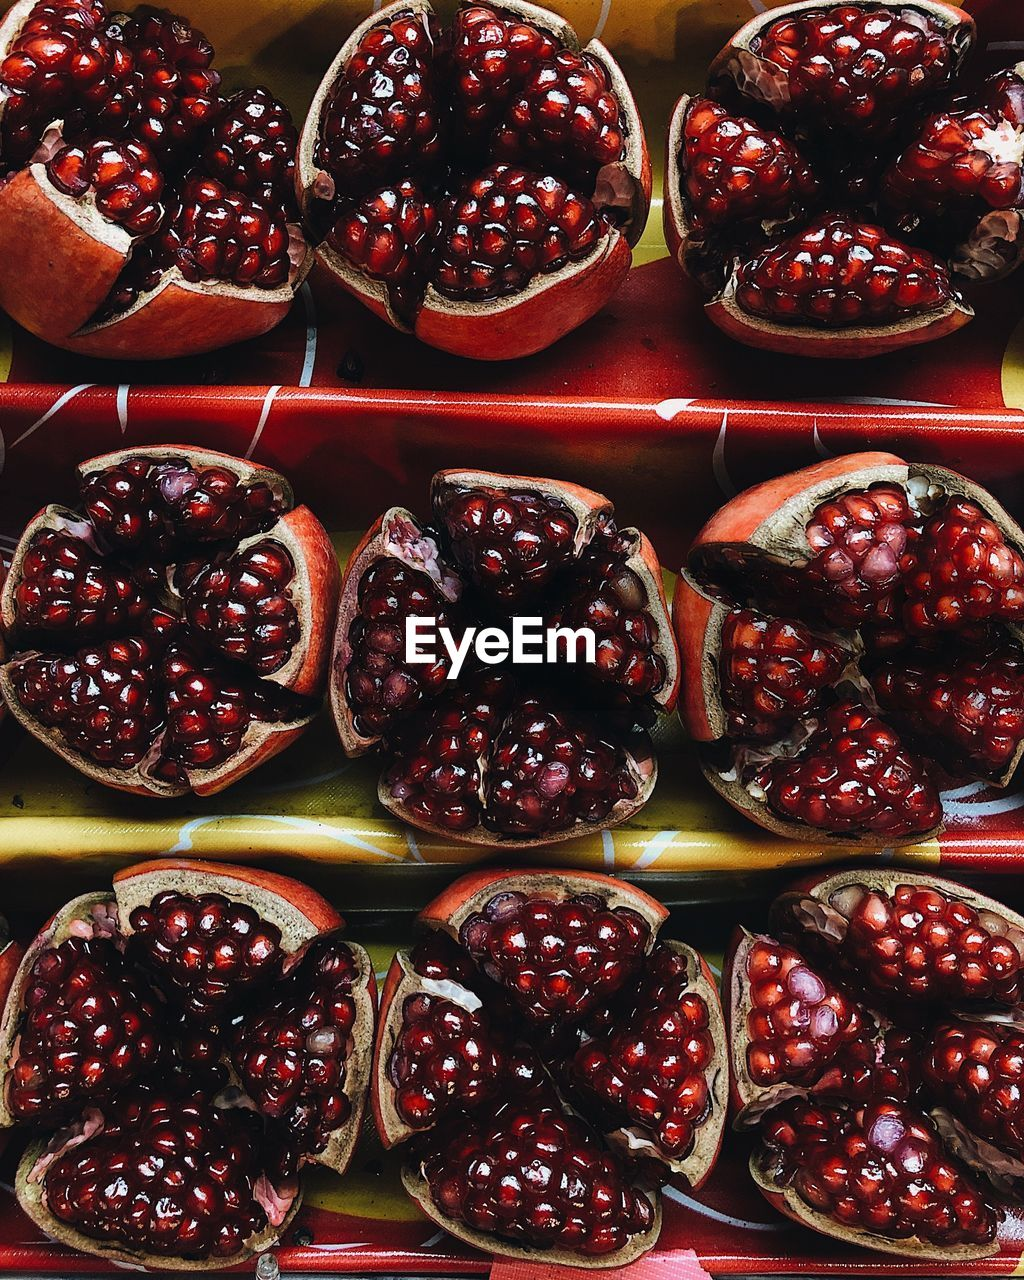 food and drink, food, red, freshness, fruit, healthy eating, for sale, large group of objects, full frame, still life, wellbeing, retail, no people, indoors, backgrounds, arrangement, market, high angle view, side by side, berry fruit, retail display, ripe, temptation